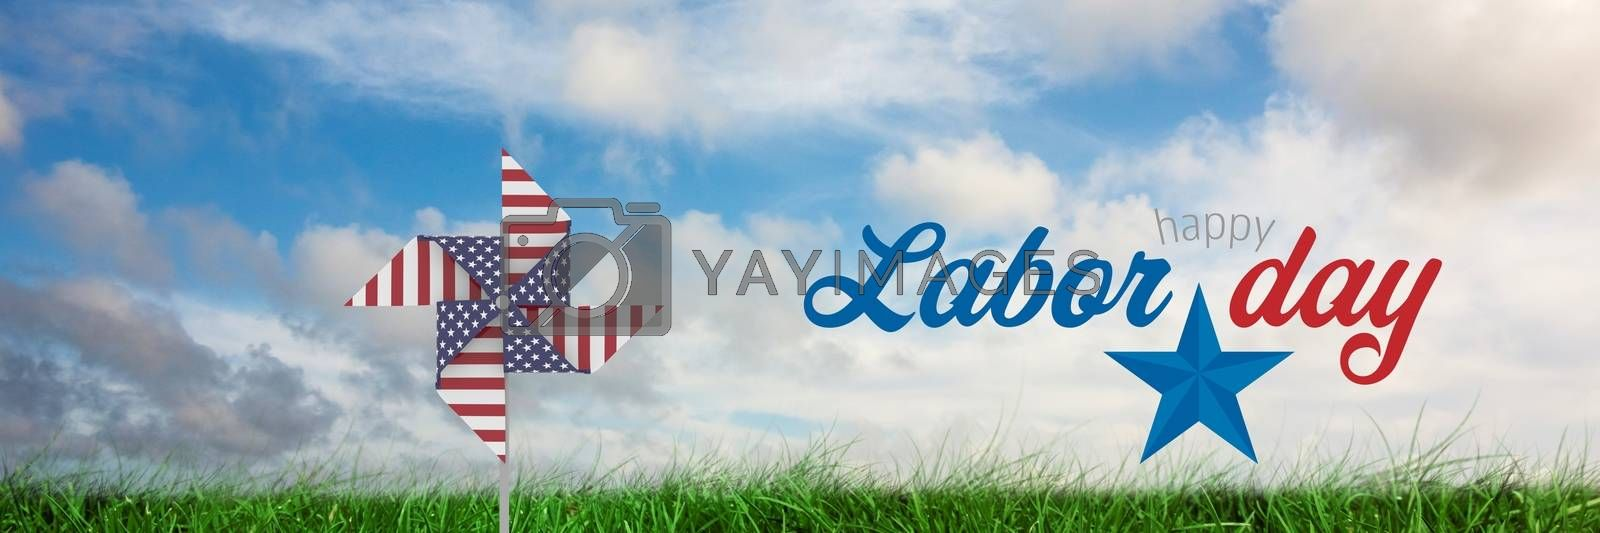 Happy labor day text and USA wind catcher in front of grass and sky by Wavebreakmedia